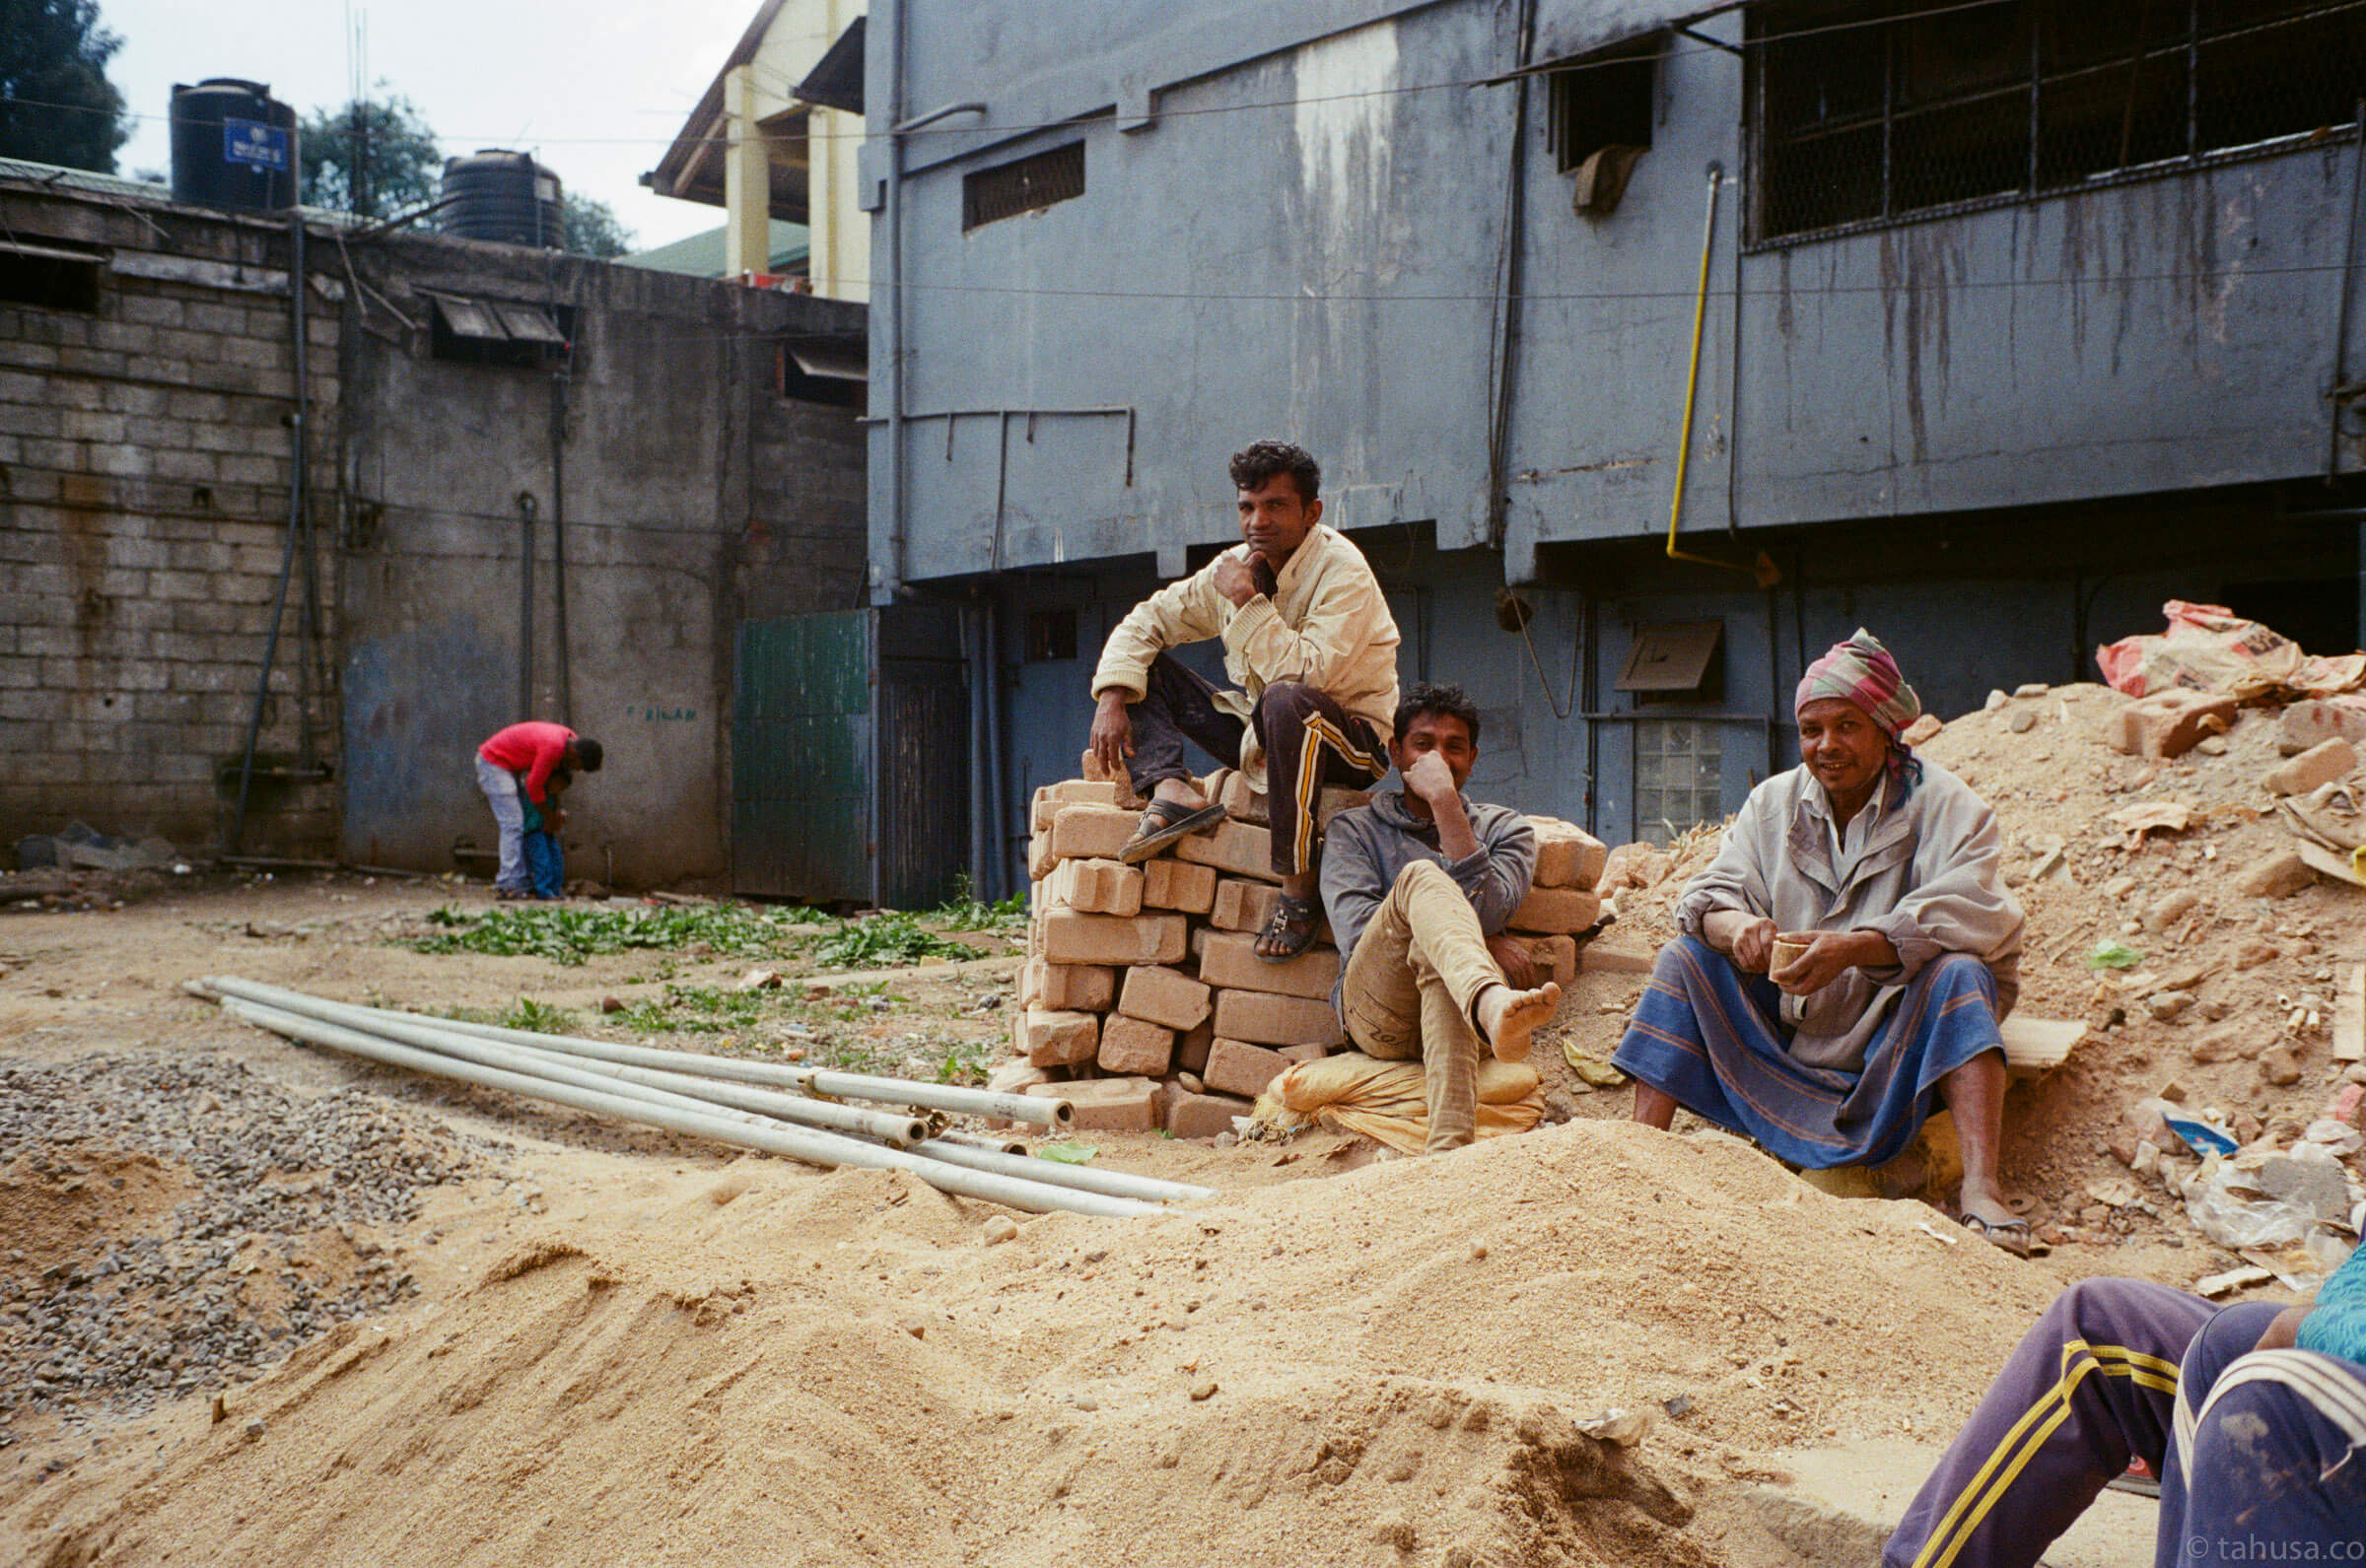 construction-workers-taking-a-break-Nuwara-Eliya-Sri-Lanka-Travel-documentary-train-ride-using-leica-m2-Kodak-Super-Gold-400-iso400-Jap-jp-japanese-version-Summilux-35mm-f1.4-infinity-lock-pre-asph